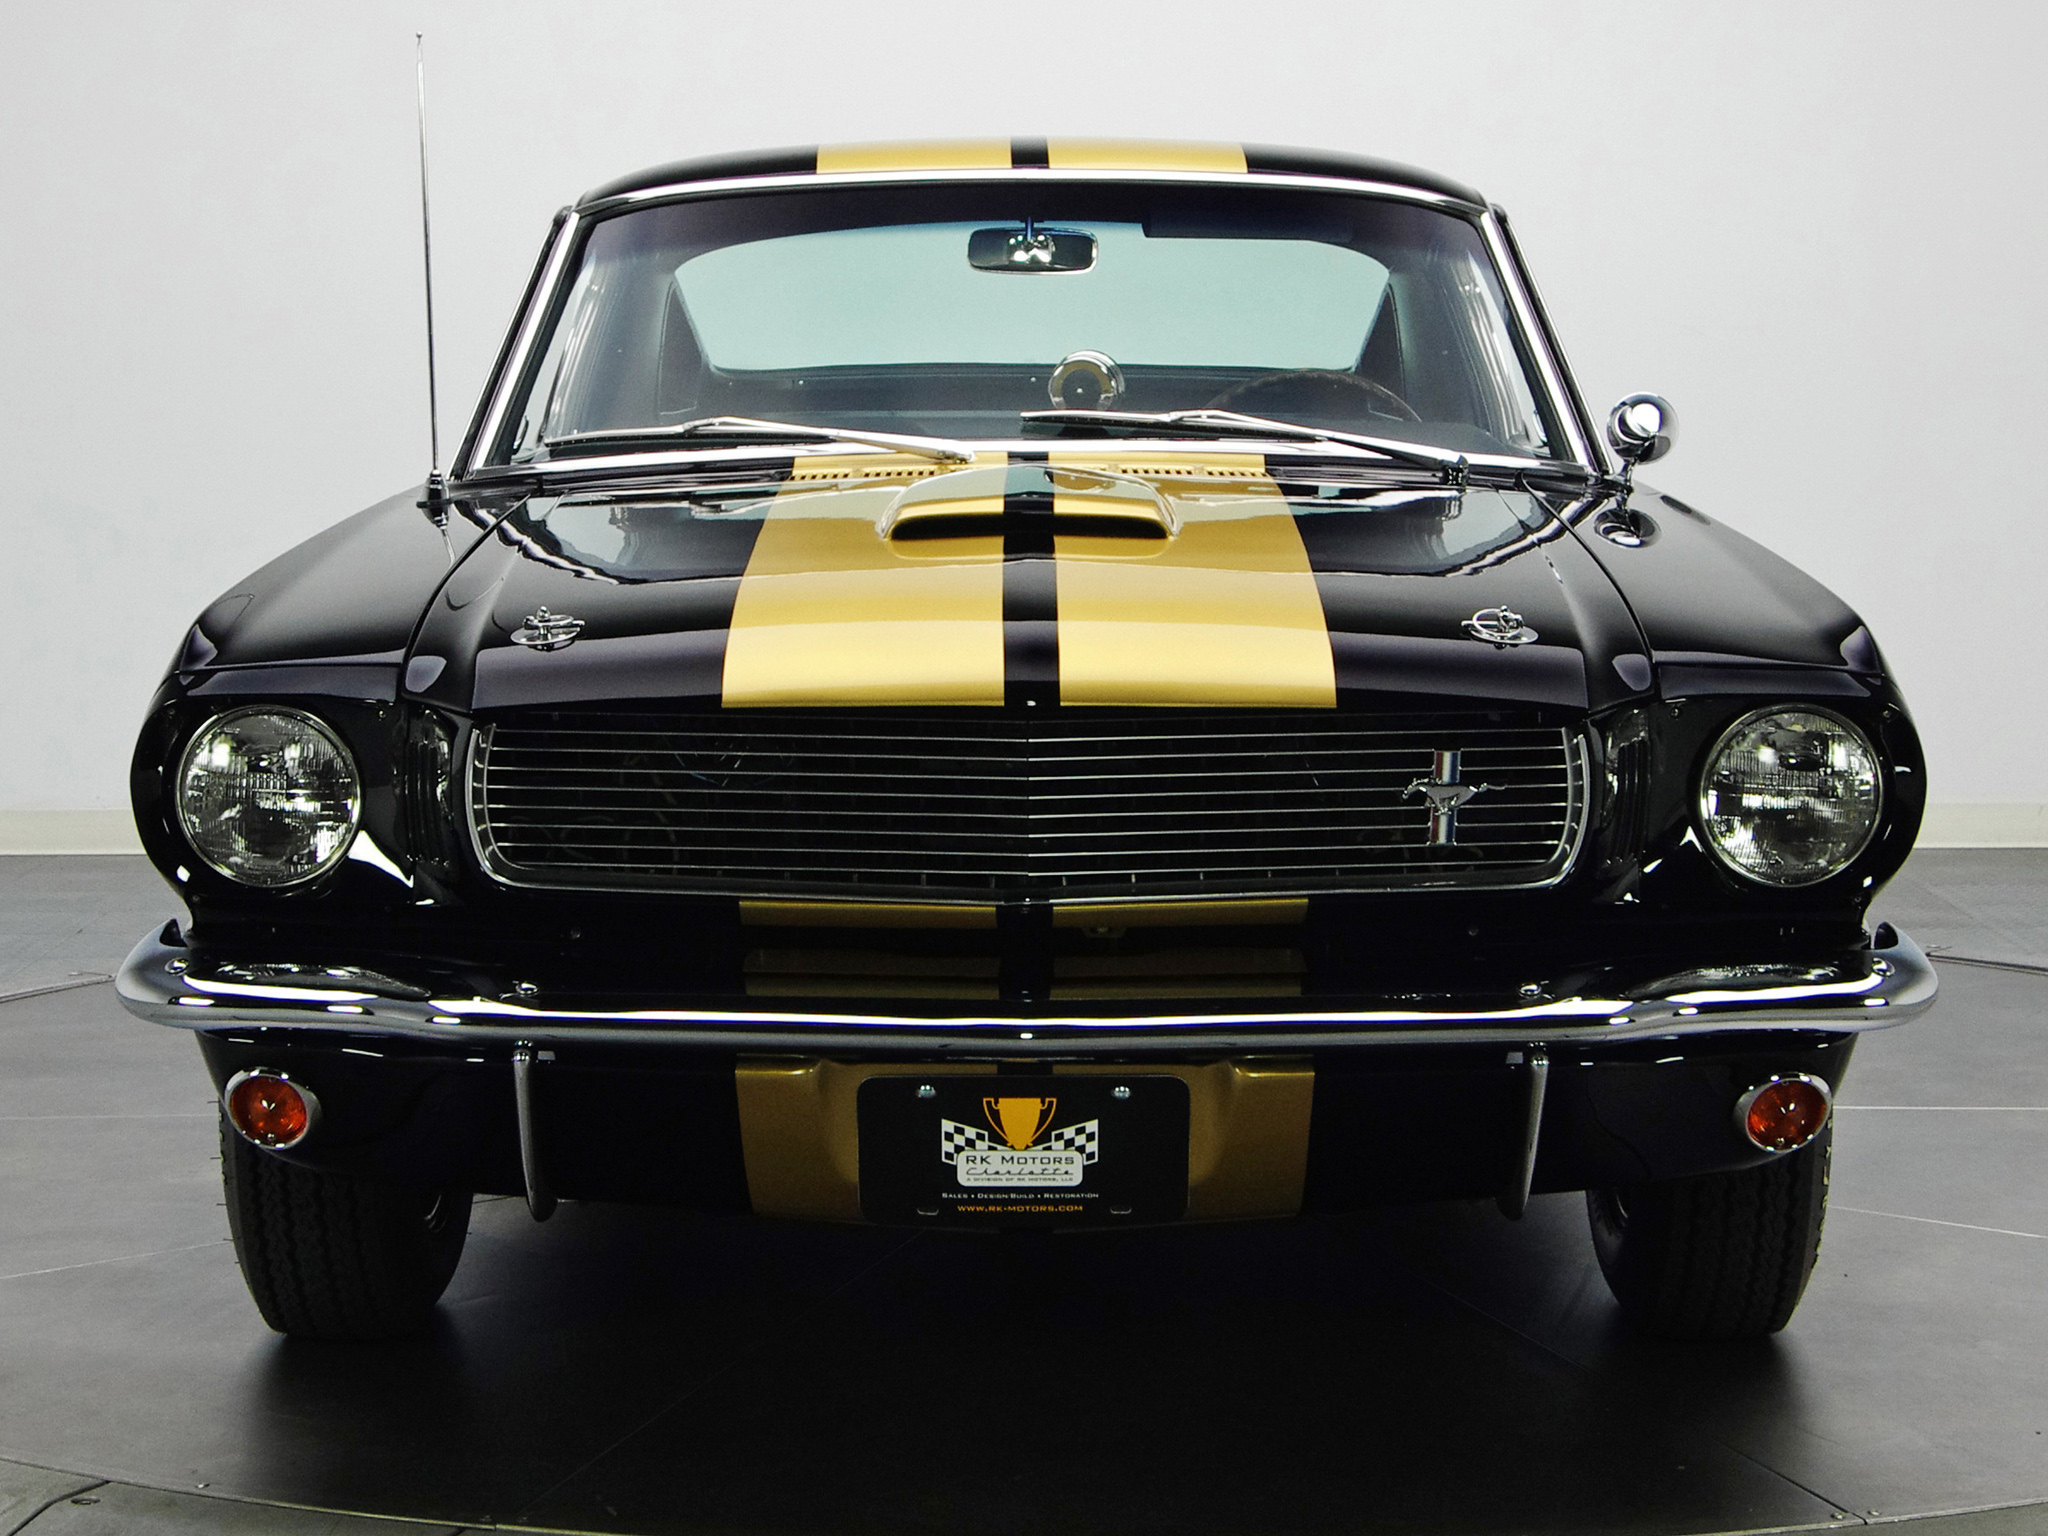 Original Mustang Shelby >> 1966 Shelby GT350H ford mustang classic muscle r wallpaper | 2048x1536 | 94470 | WallpaperUP